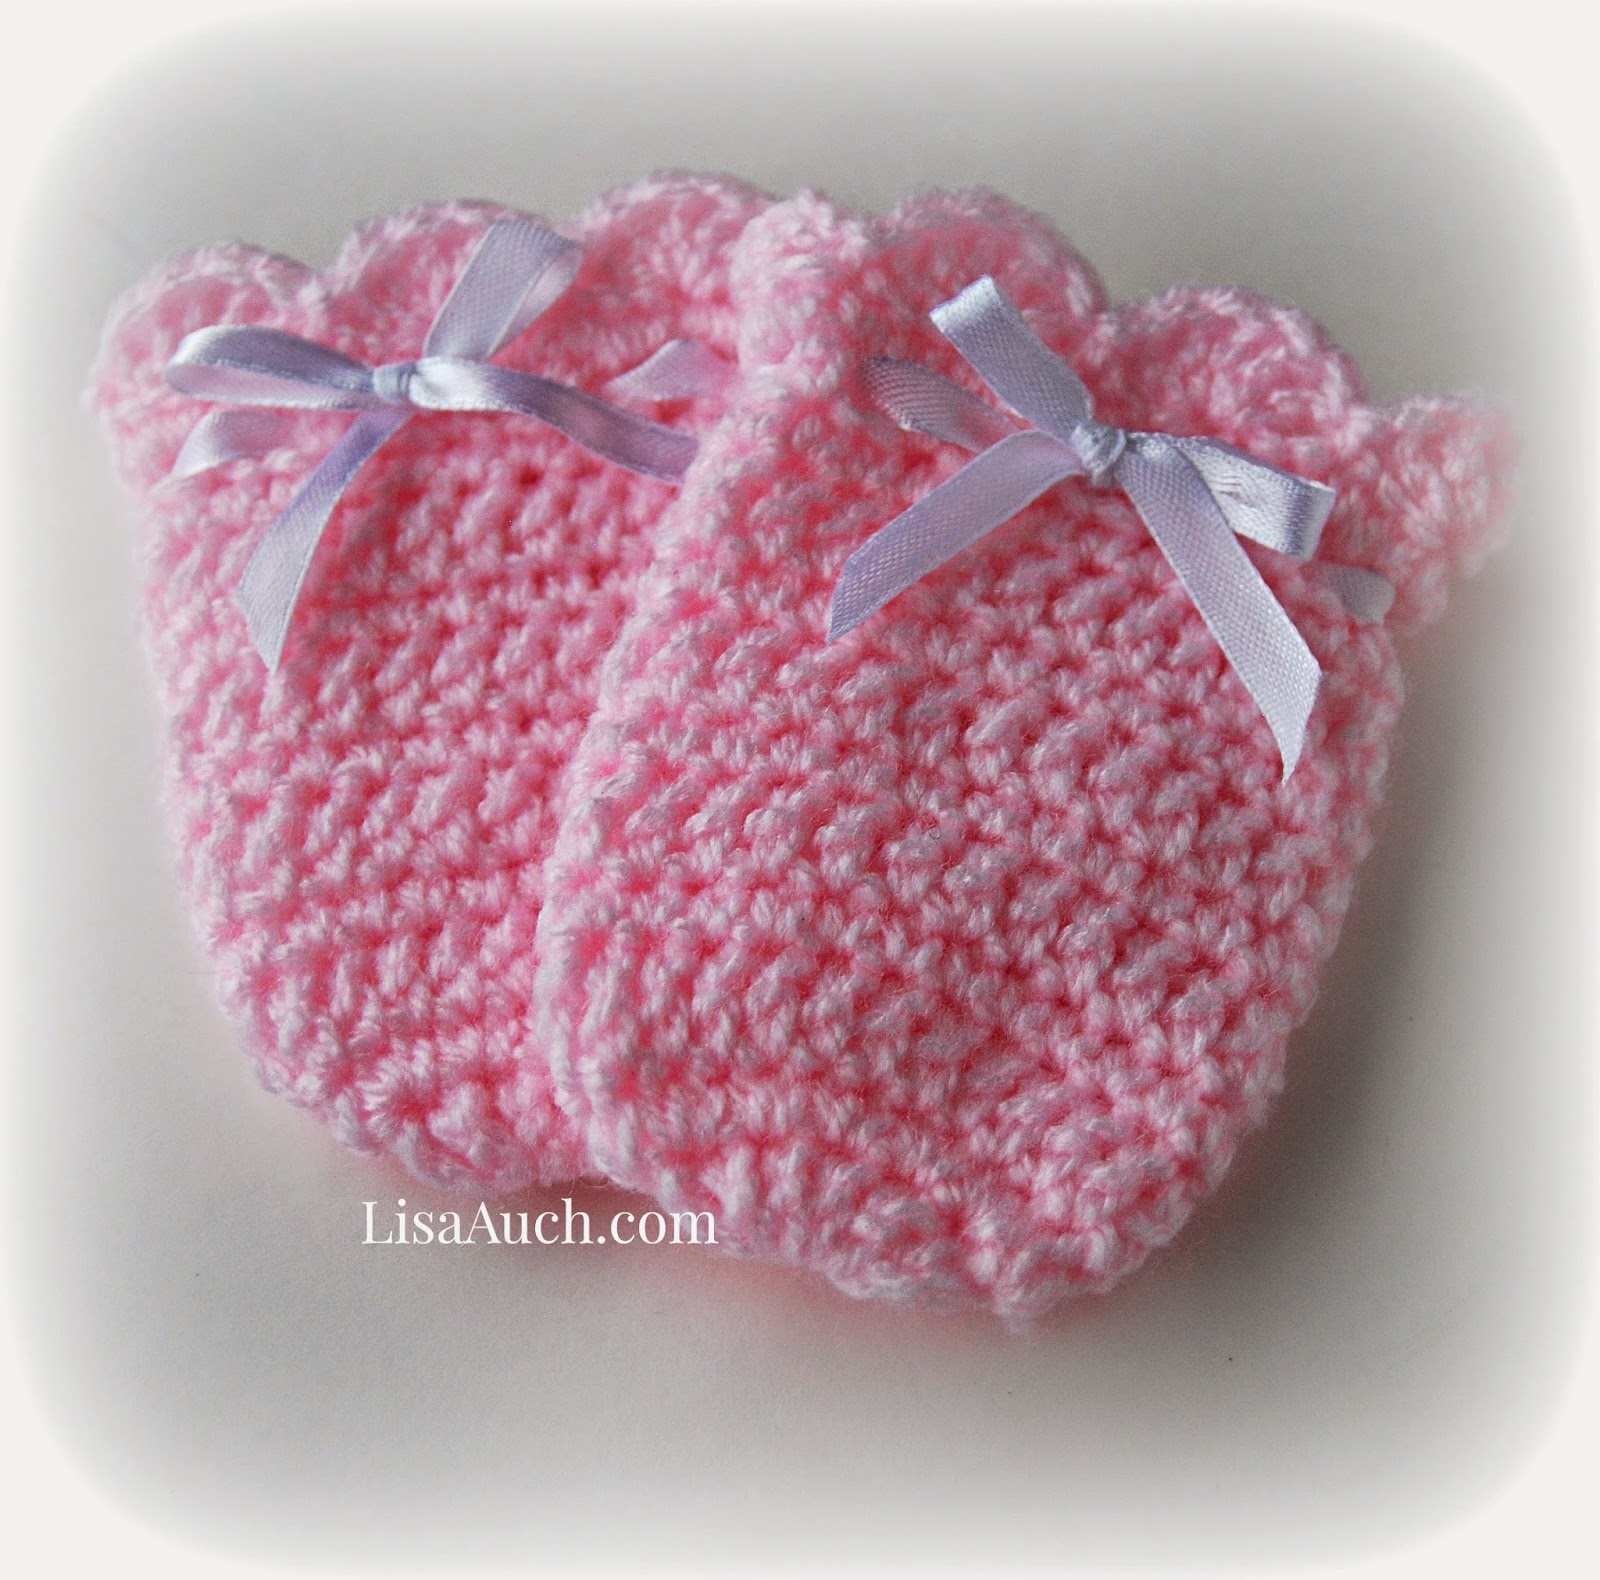 Crochet Patterns Free Easy Mittens images